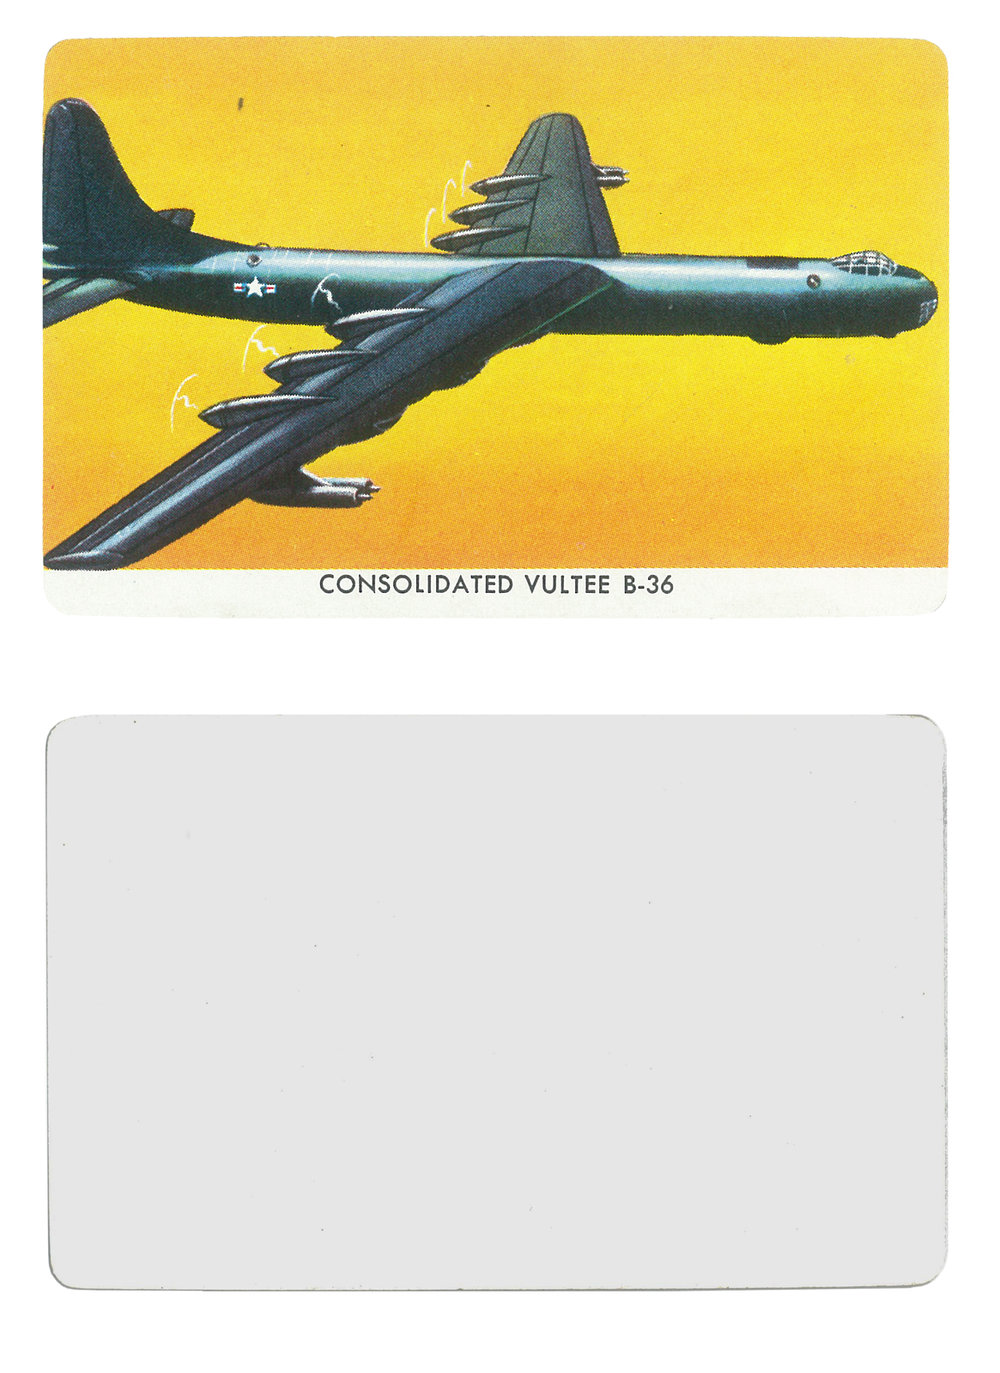 Consolidated Vultee B-36 Series: Quaker Pack-O-Ten Warplane Cards Manufacture: Quaker Oats Company Card Dimensions: 2.25 × 3.5 inches USA -1957